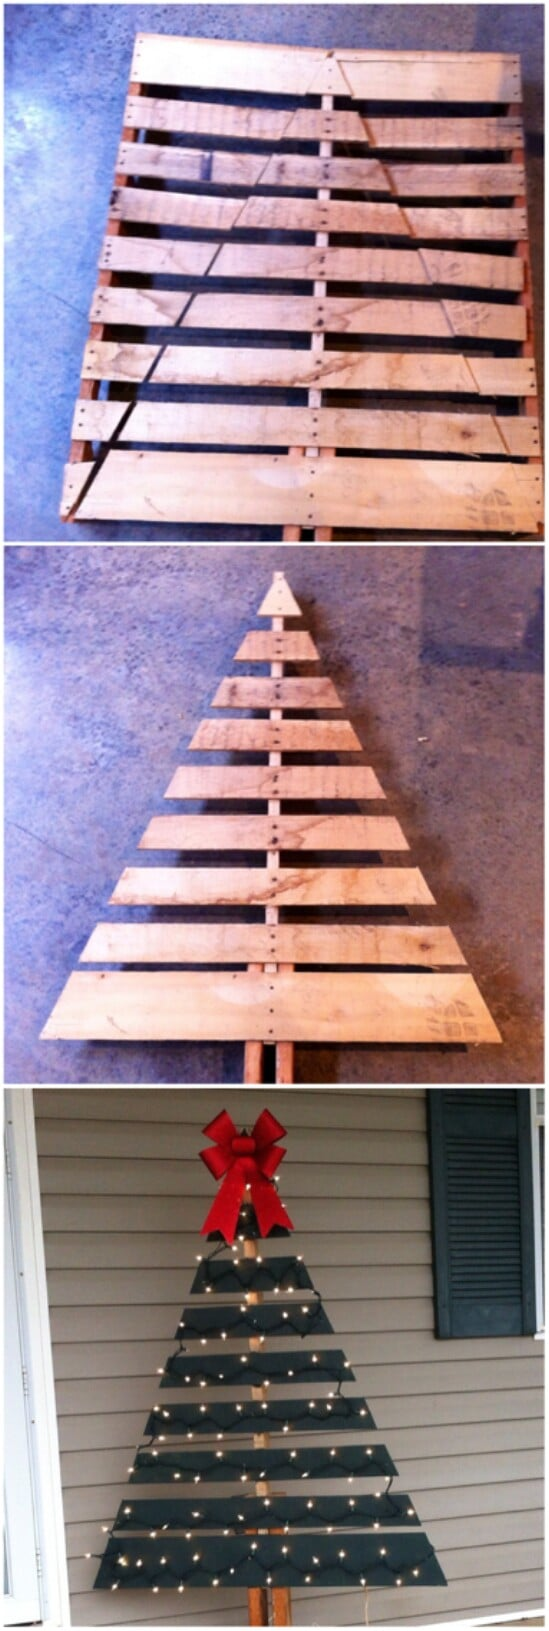 Pvc Christmas Tree Plans.20 Impossibly Creative Diy Outdoor Christmas Decorations